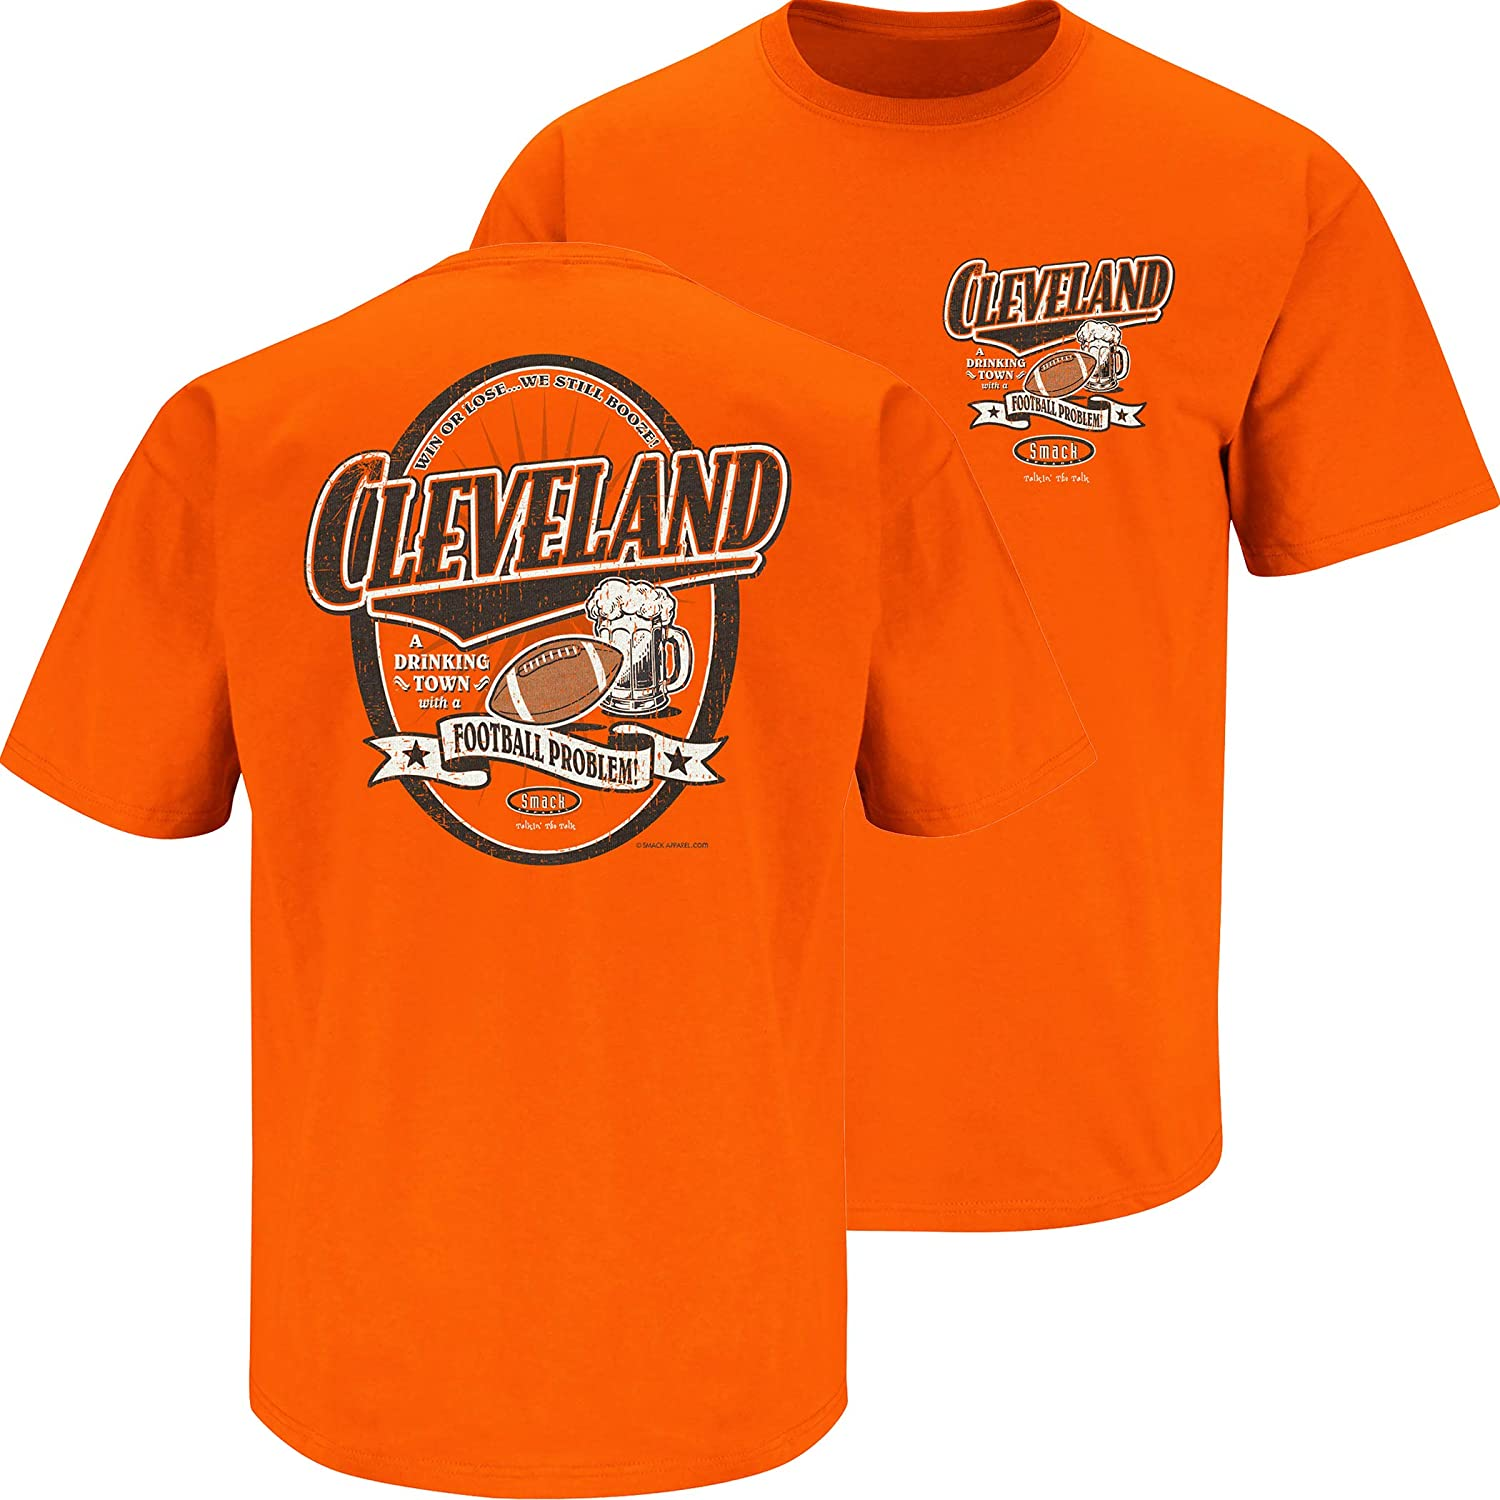 Orange T-Shirt Smack Apparel Cleveland Football Fans Cleveland a Drinking Town with a Football Problem Sm-5X